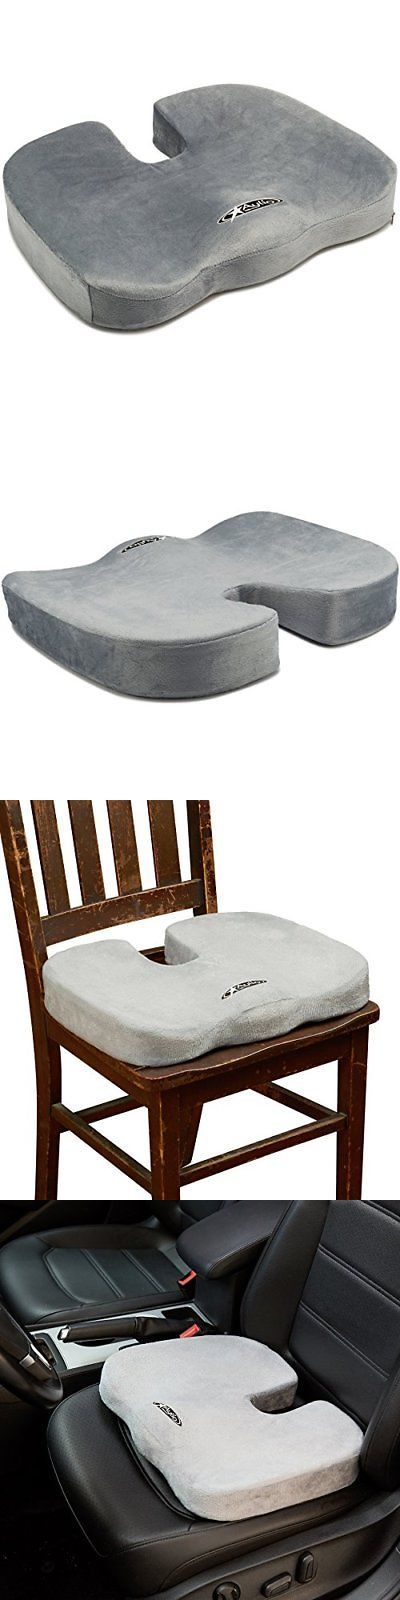 Massage Pillows and Bolsters: Aylio Coccyx Seat Cushion | Back Support, Tailbone And Sciatica Pain Relief,... -> BUY IT NOW ONLY: $50.73 on eBay!